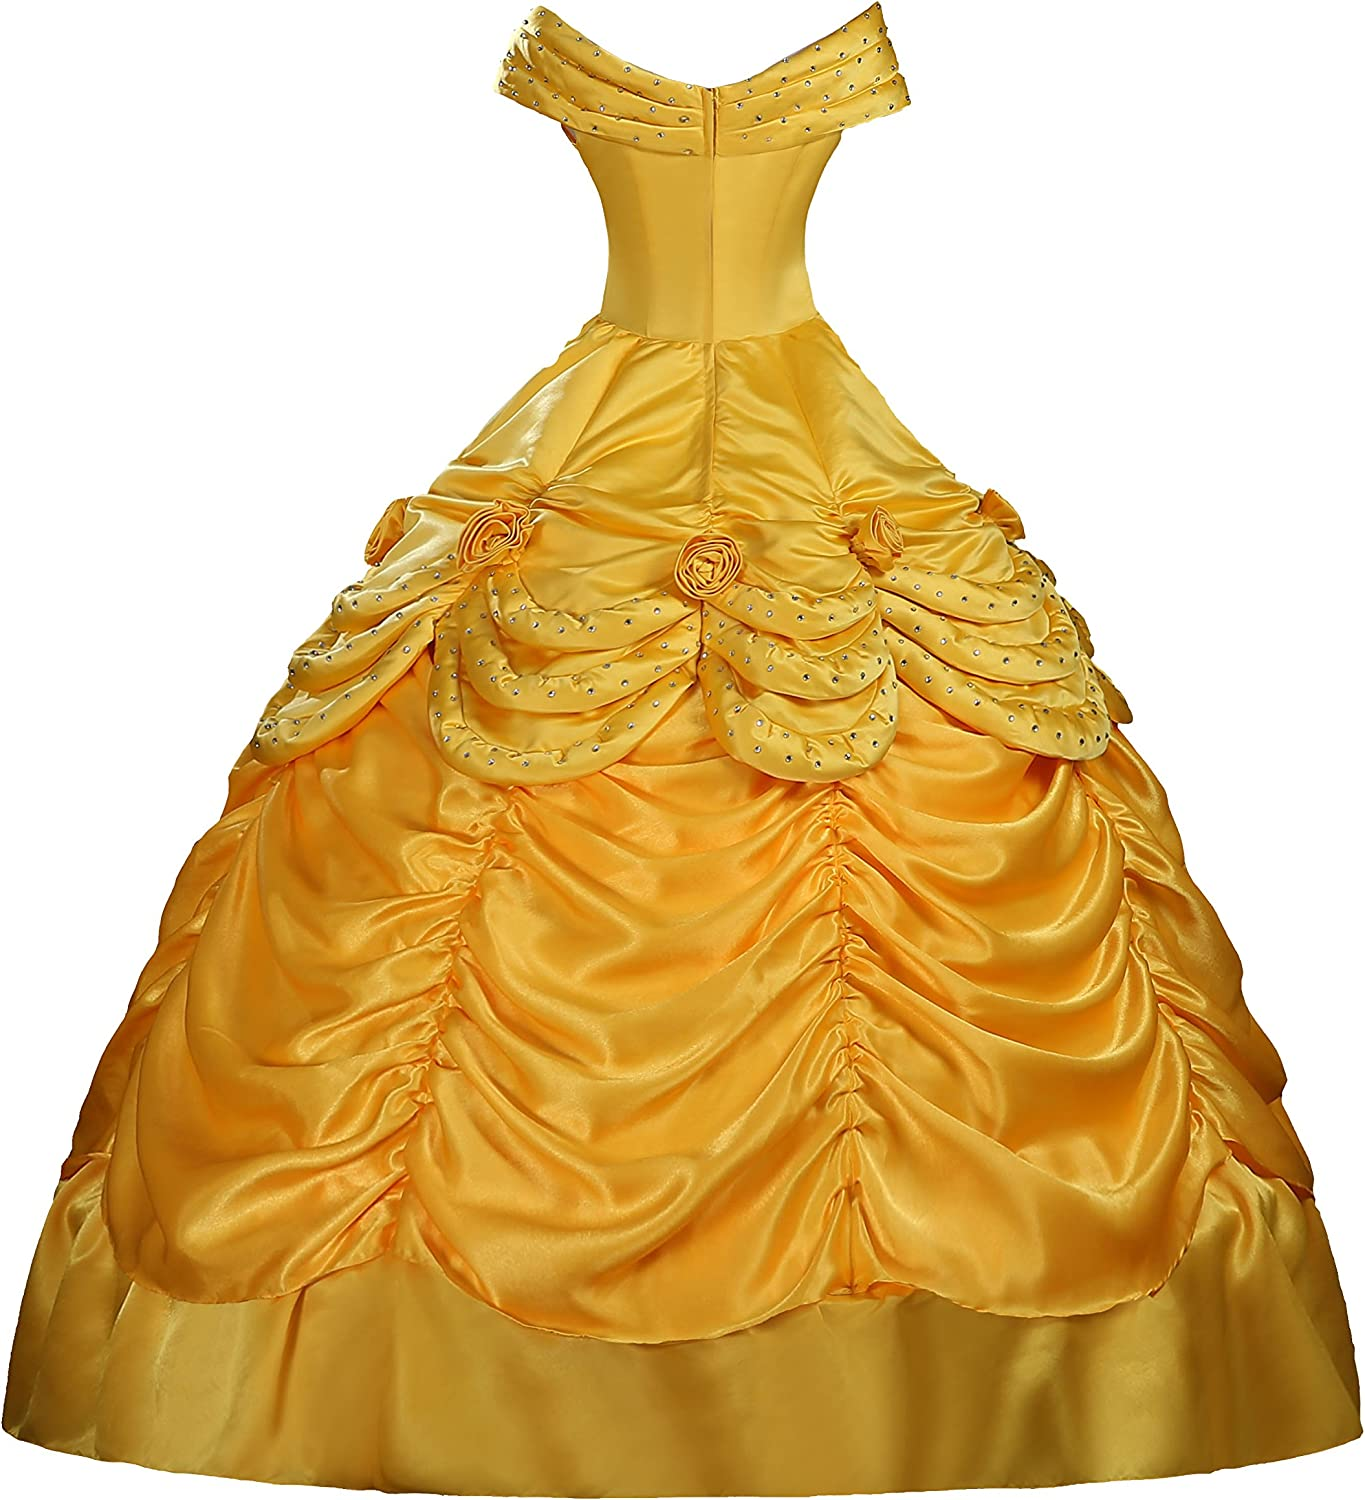 Hot Adult Beauty The Beast Princess Belle Cosplay Costume Ball Gown Fancy Dress Women